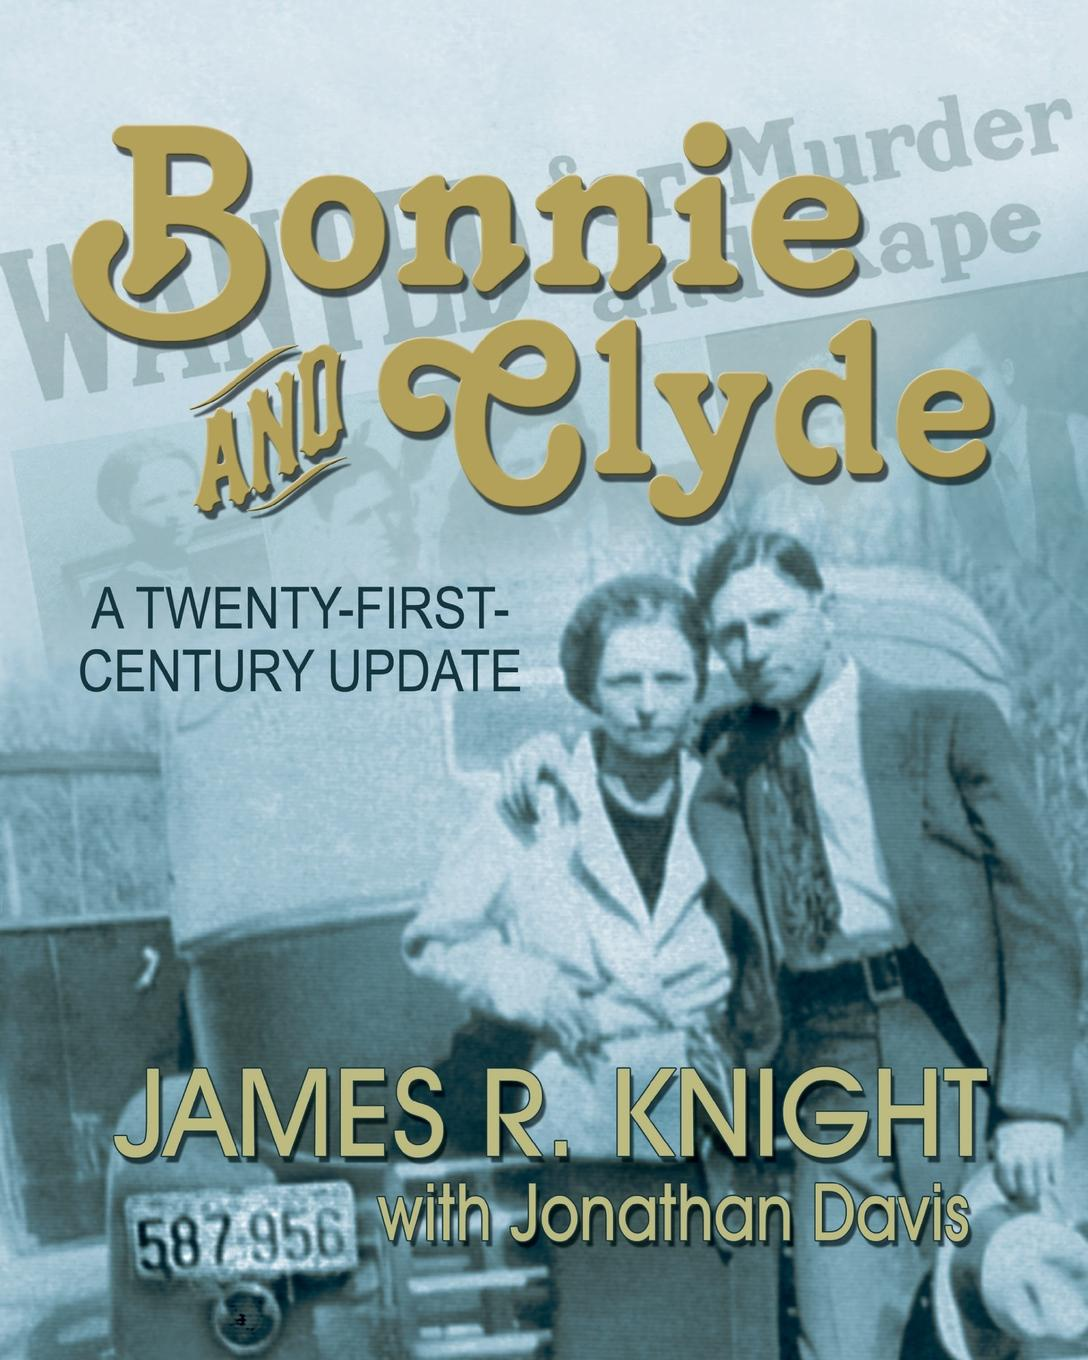 James R. Knight Bonnie and Clyde. A Twenty-First-Century Update people of the twenty first century